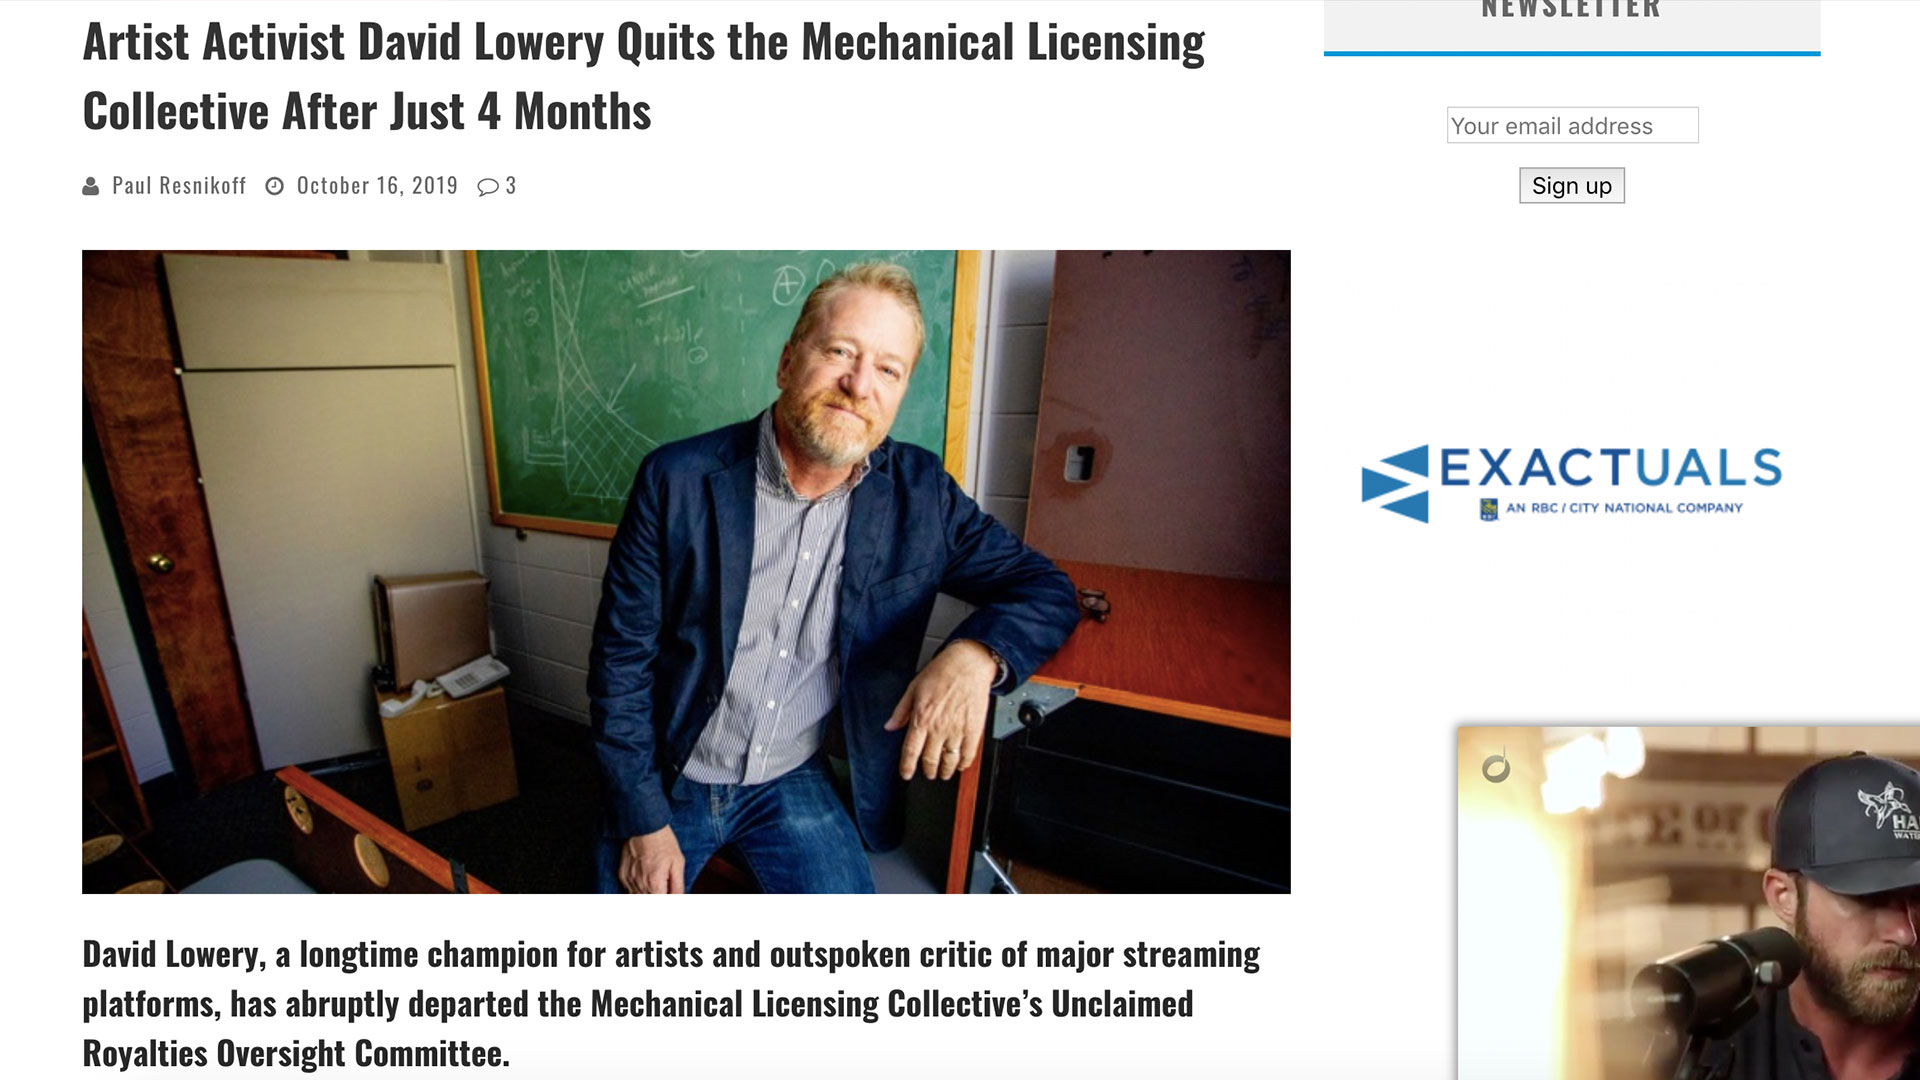 Fairness Rocks News Artist Activist David Lowery Quits the Mechanical Licensing Collective After Just 4 Months